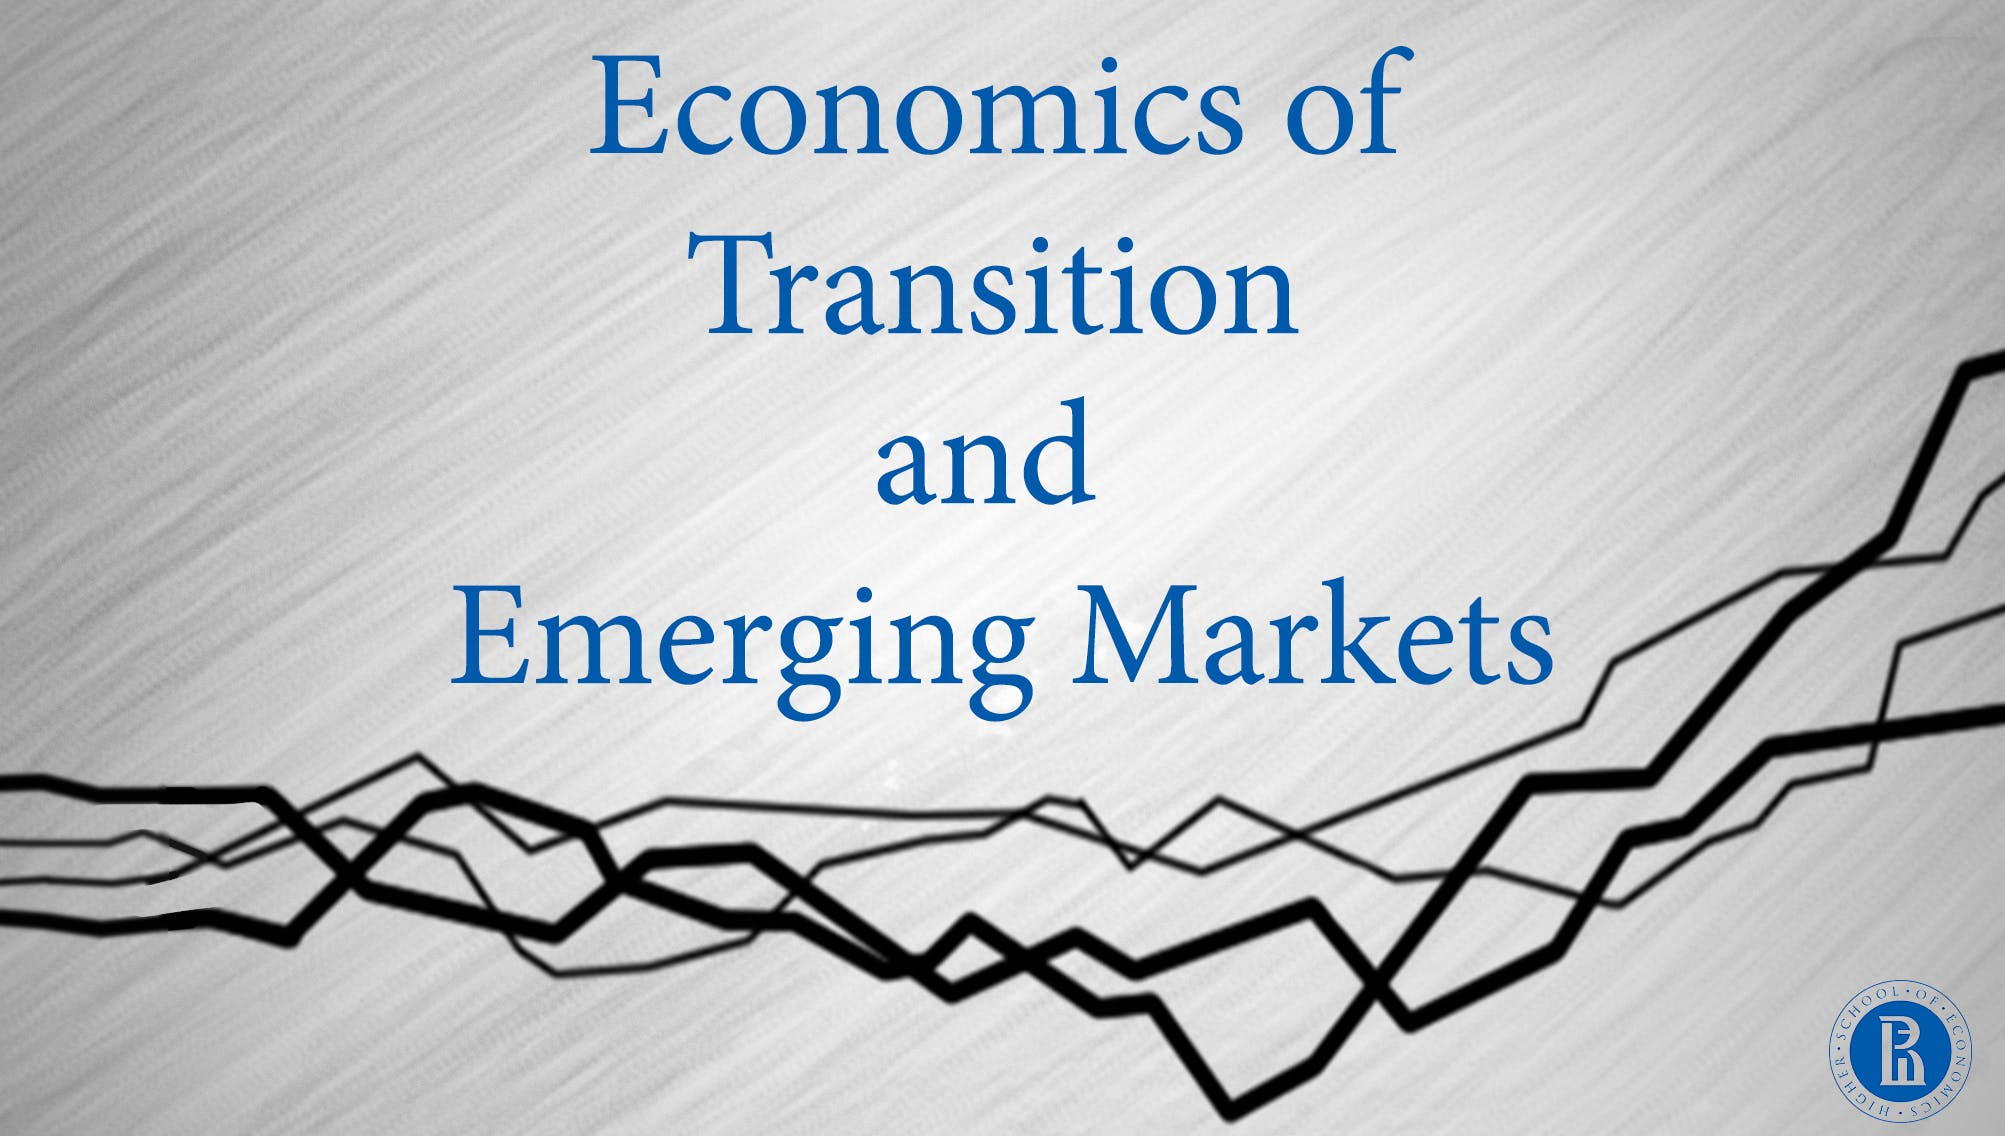 Economics of Transition and Emerging Markets